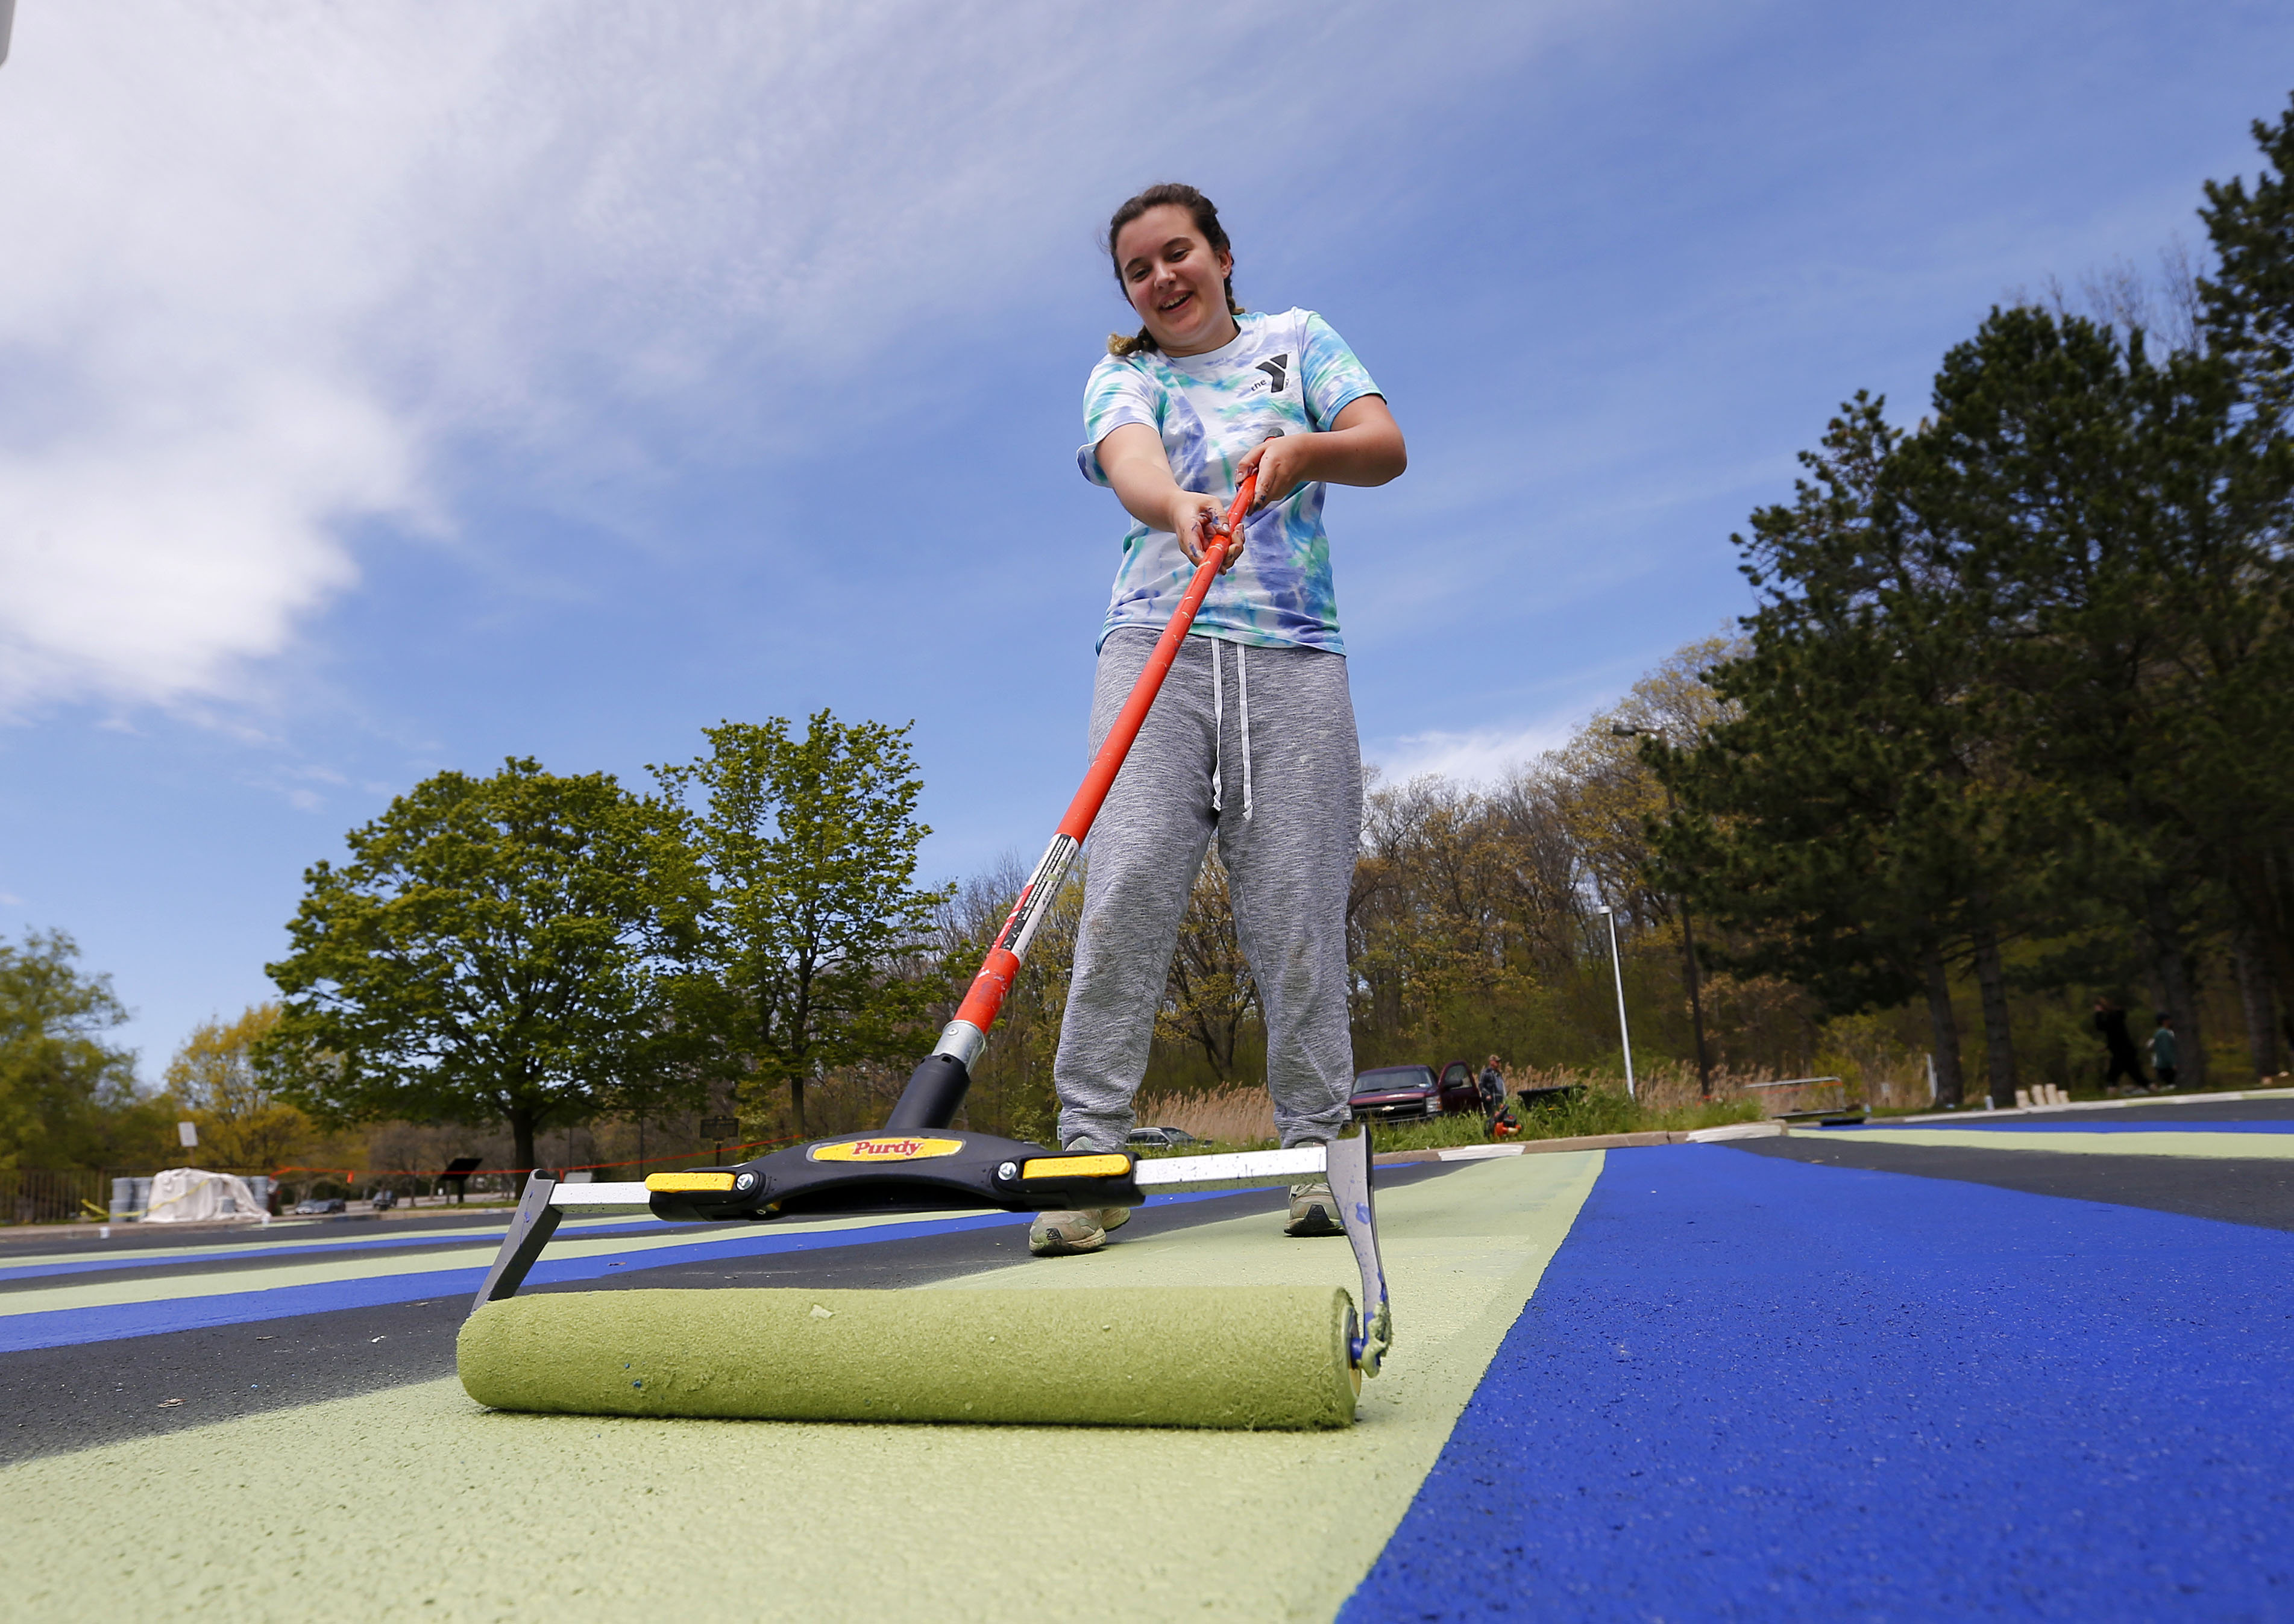 Lewiston-Porter High School art student Bailey Hoplight helps recreate the painted parking lot at Artpark State Park in Lewiston. (Mark Mulville/Buffalo News)